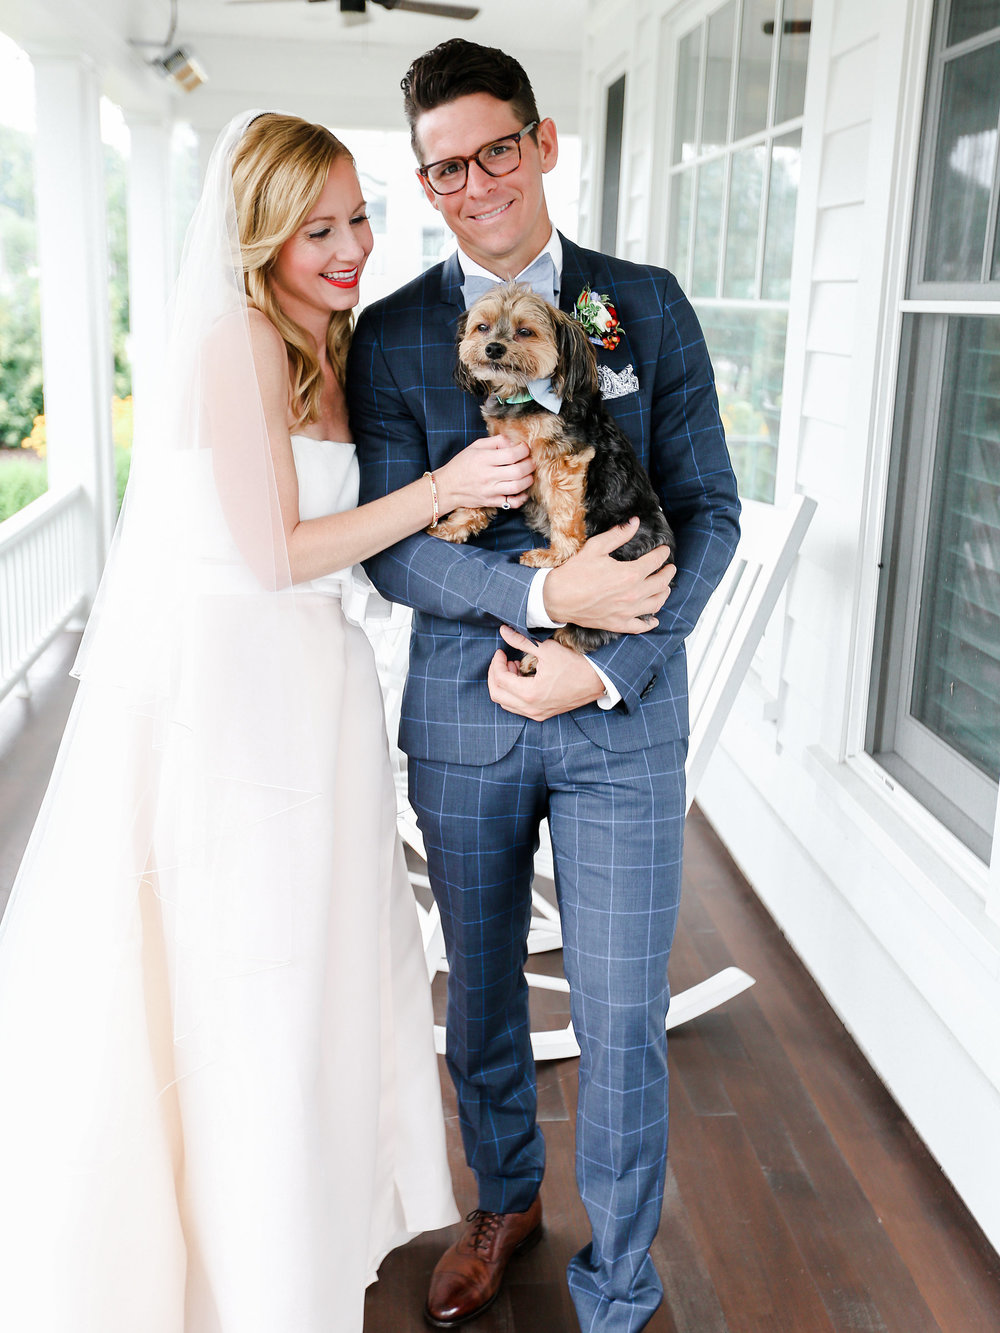 Wedding Dog With Bow Tie Photo Ideas